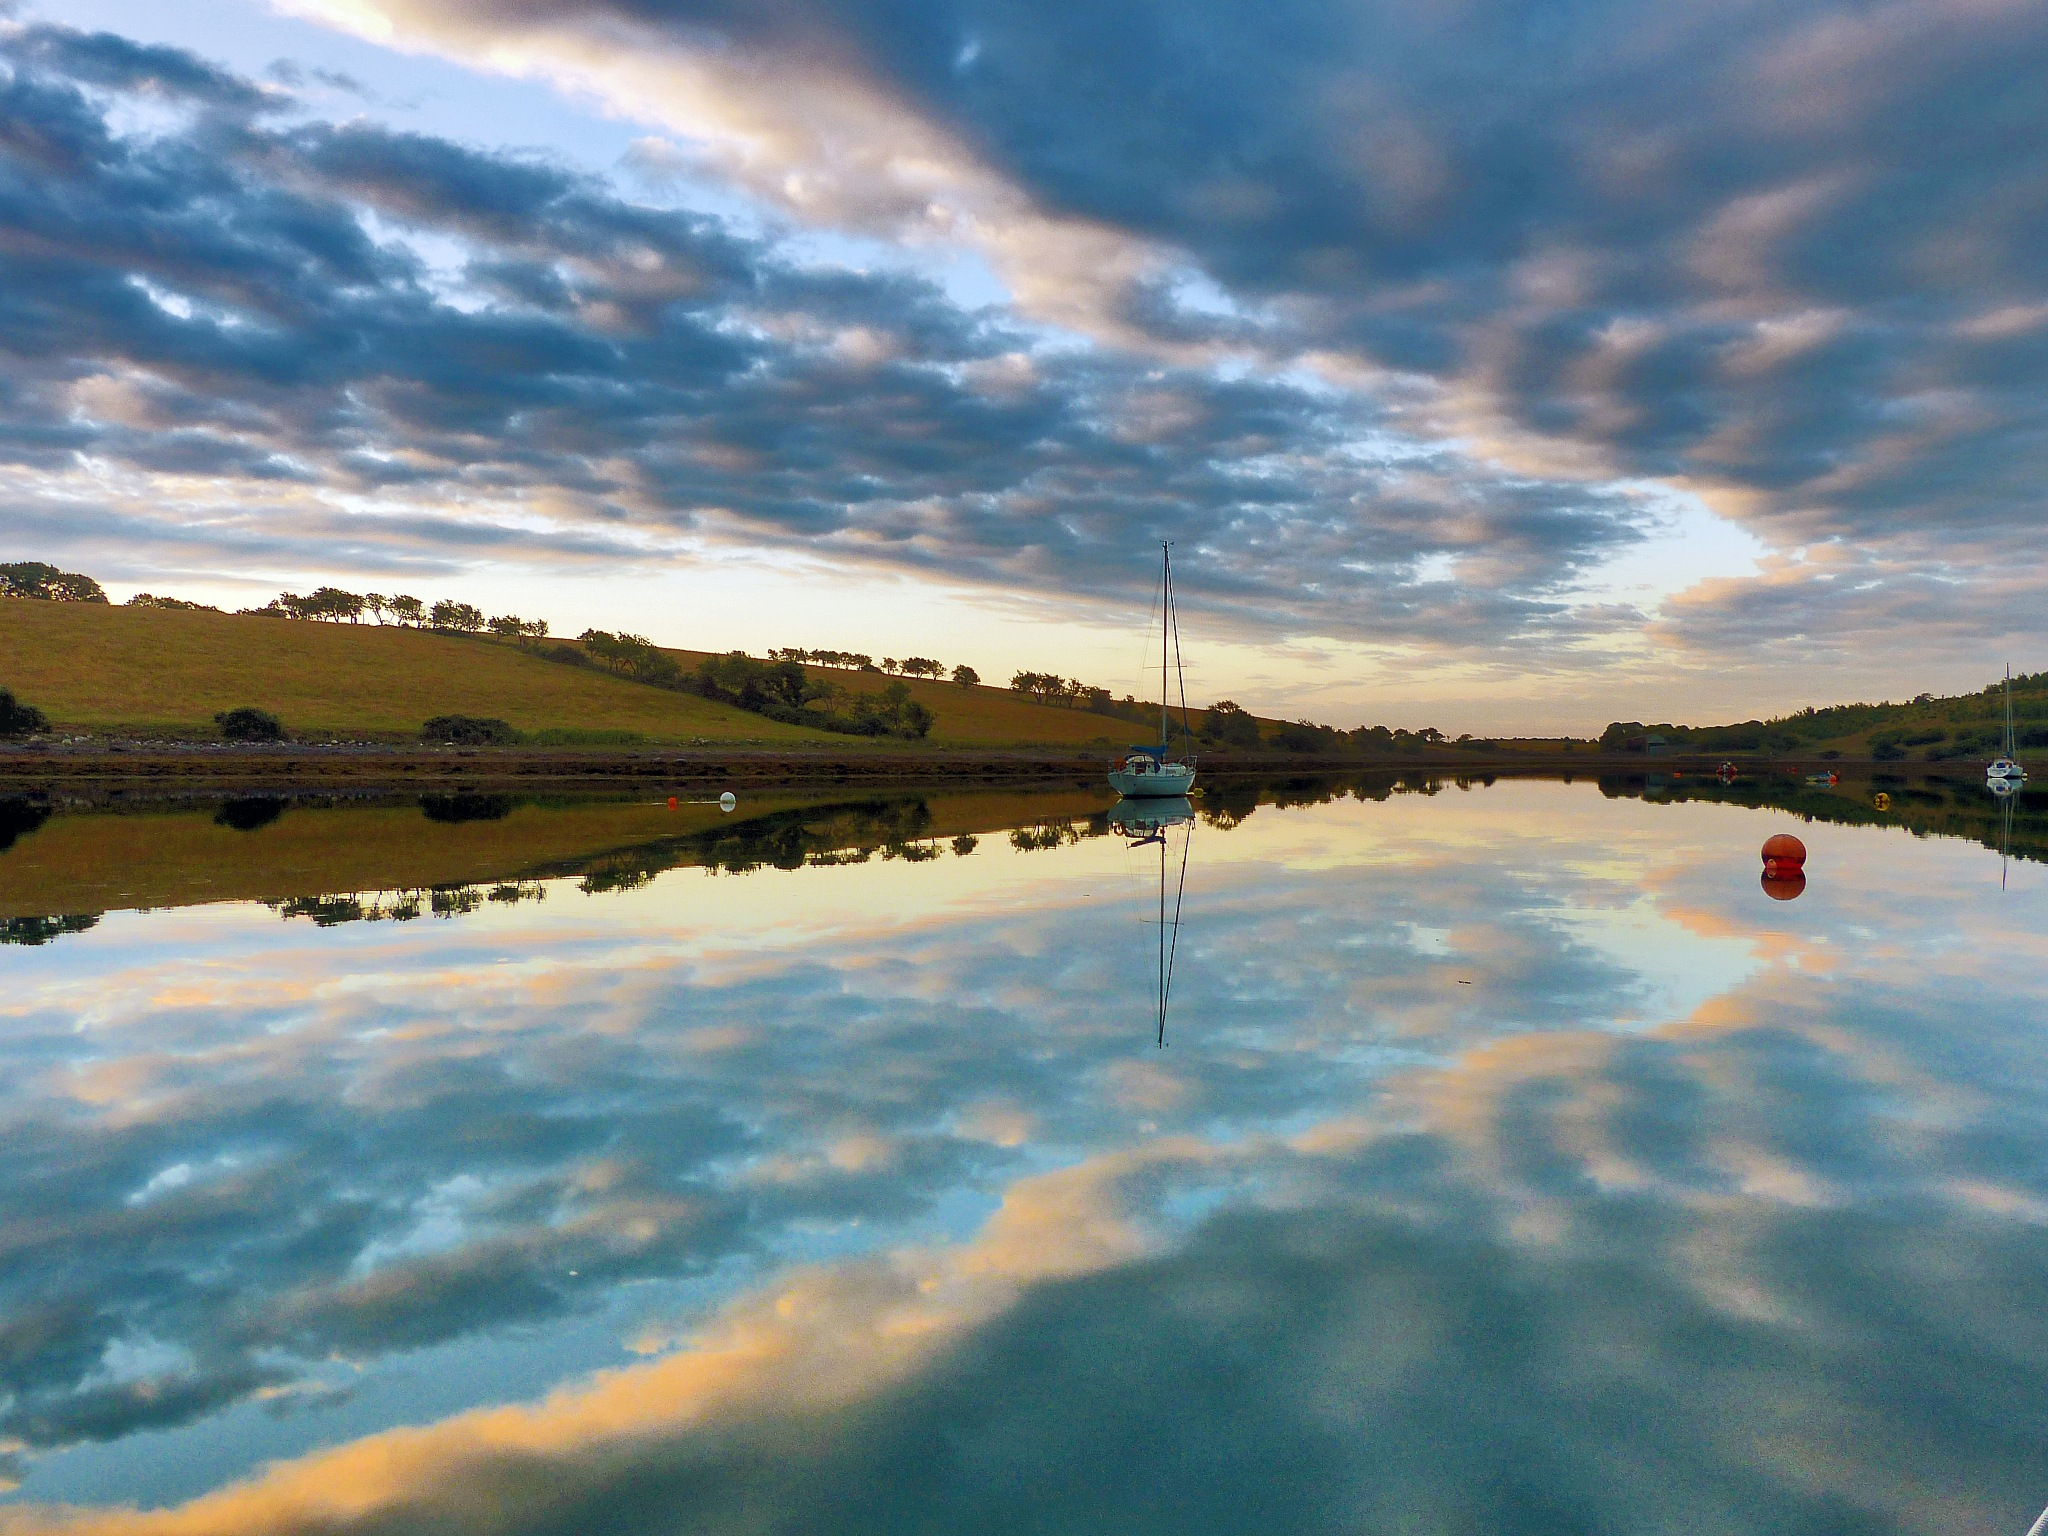 Dawn Mirror by PeterMChambers